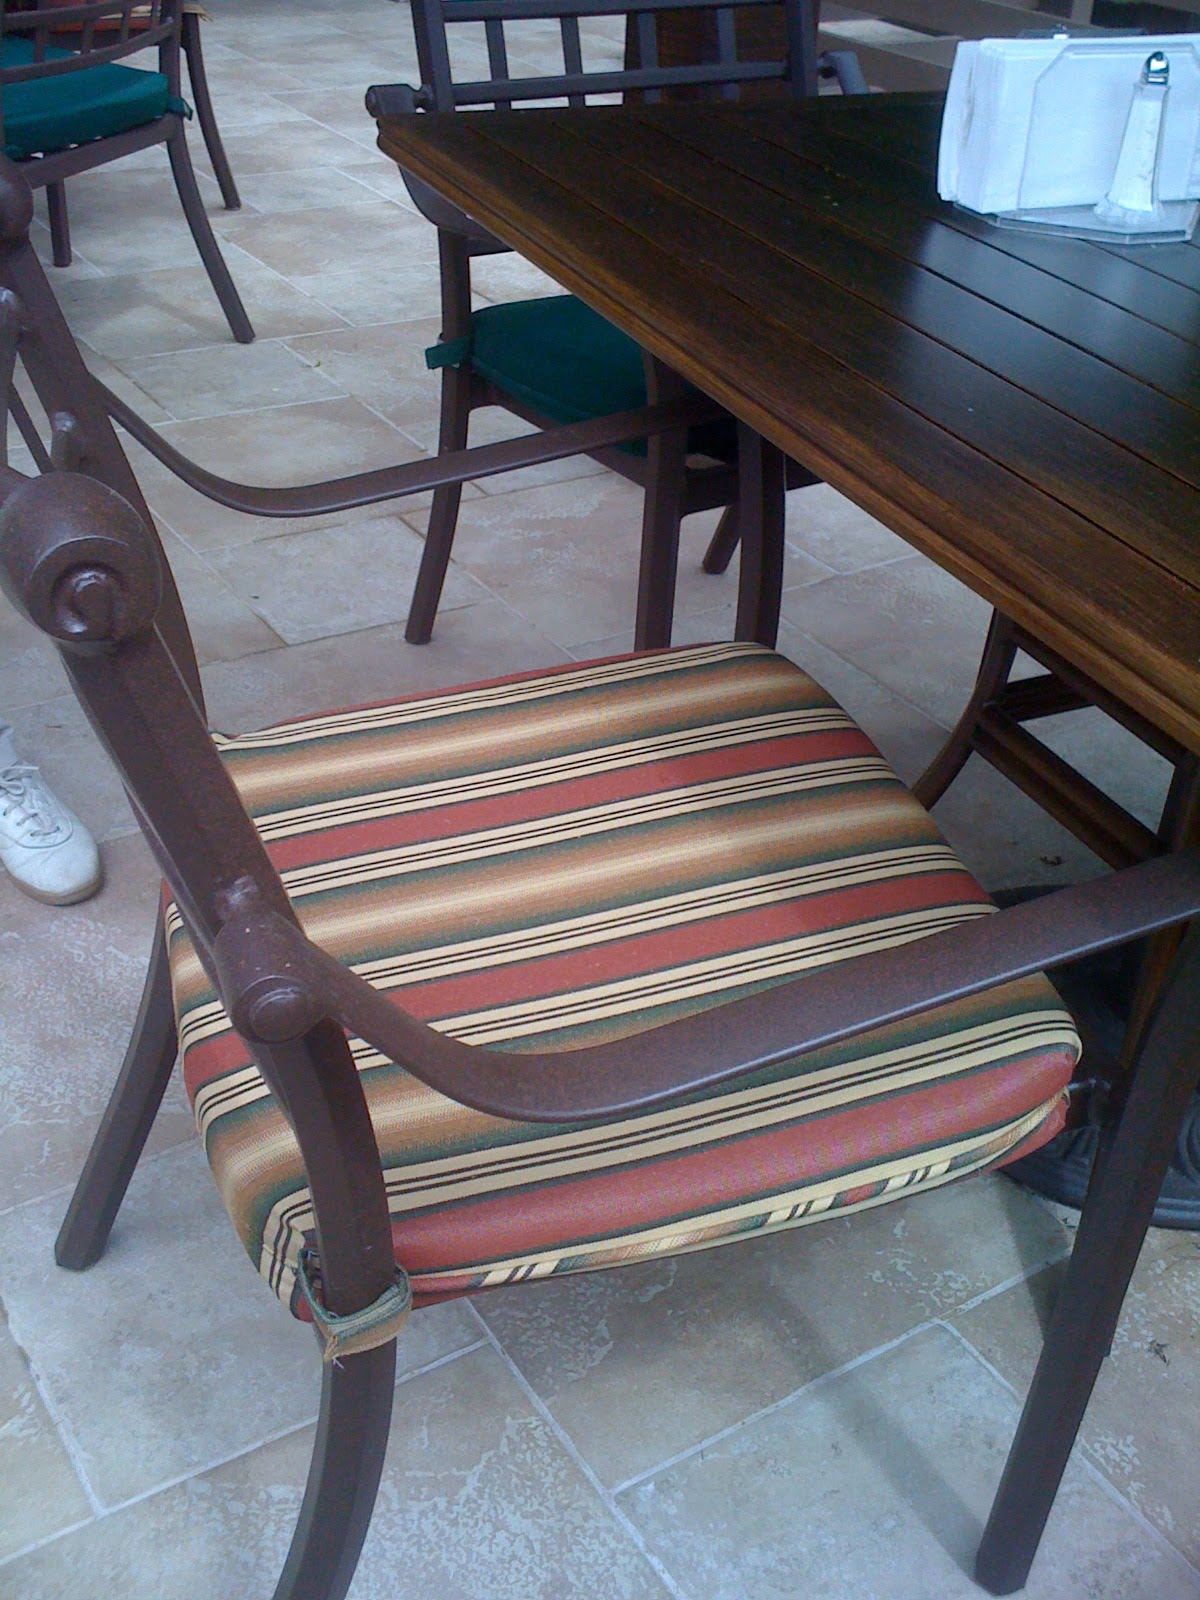 roman chair alternative fabric to cover dining room seats sew bee it sweet summertime